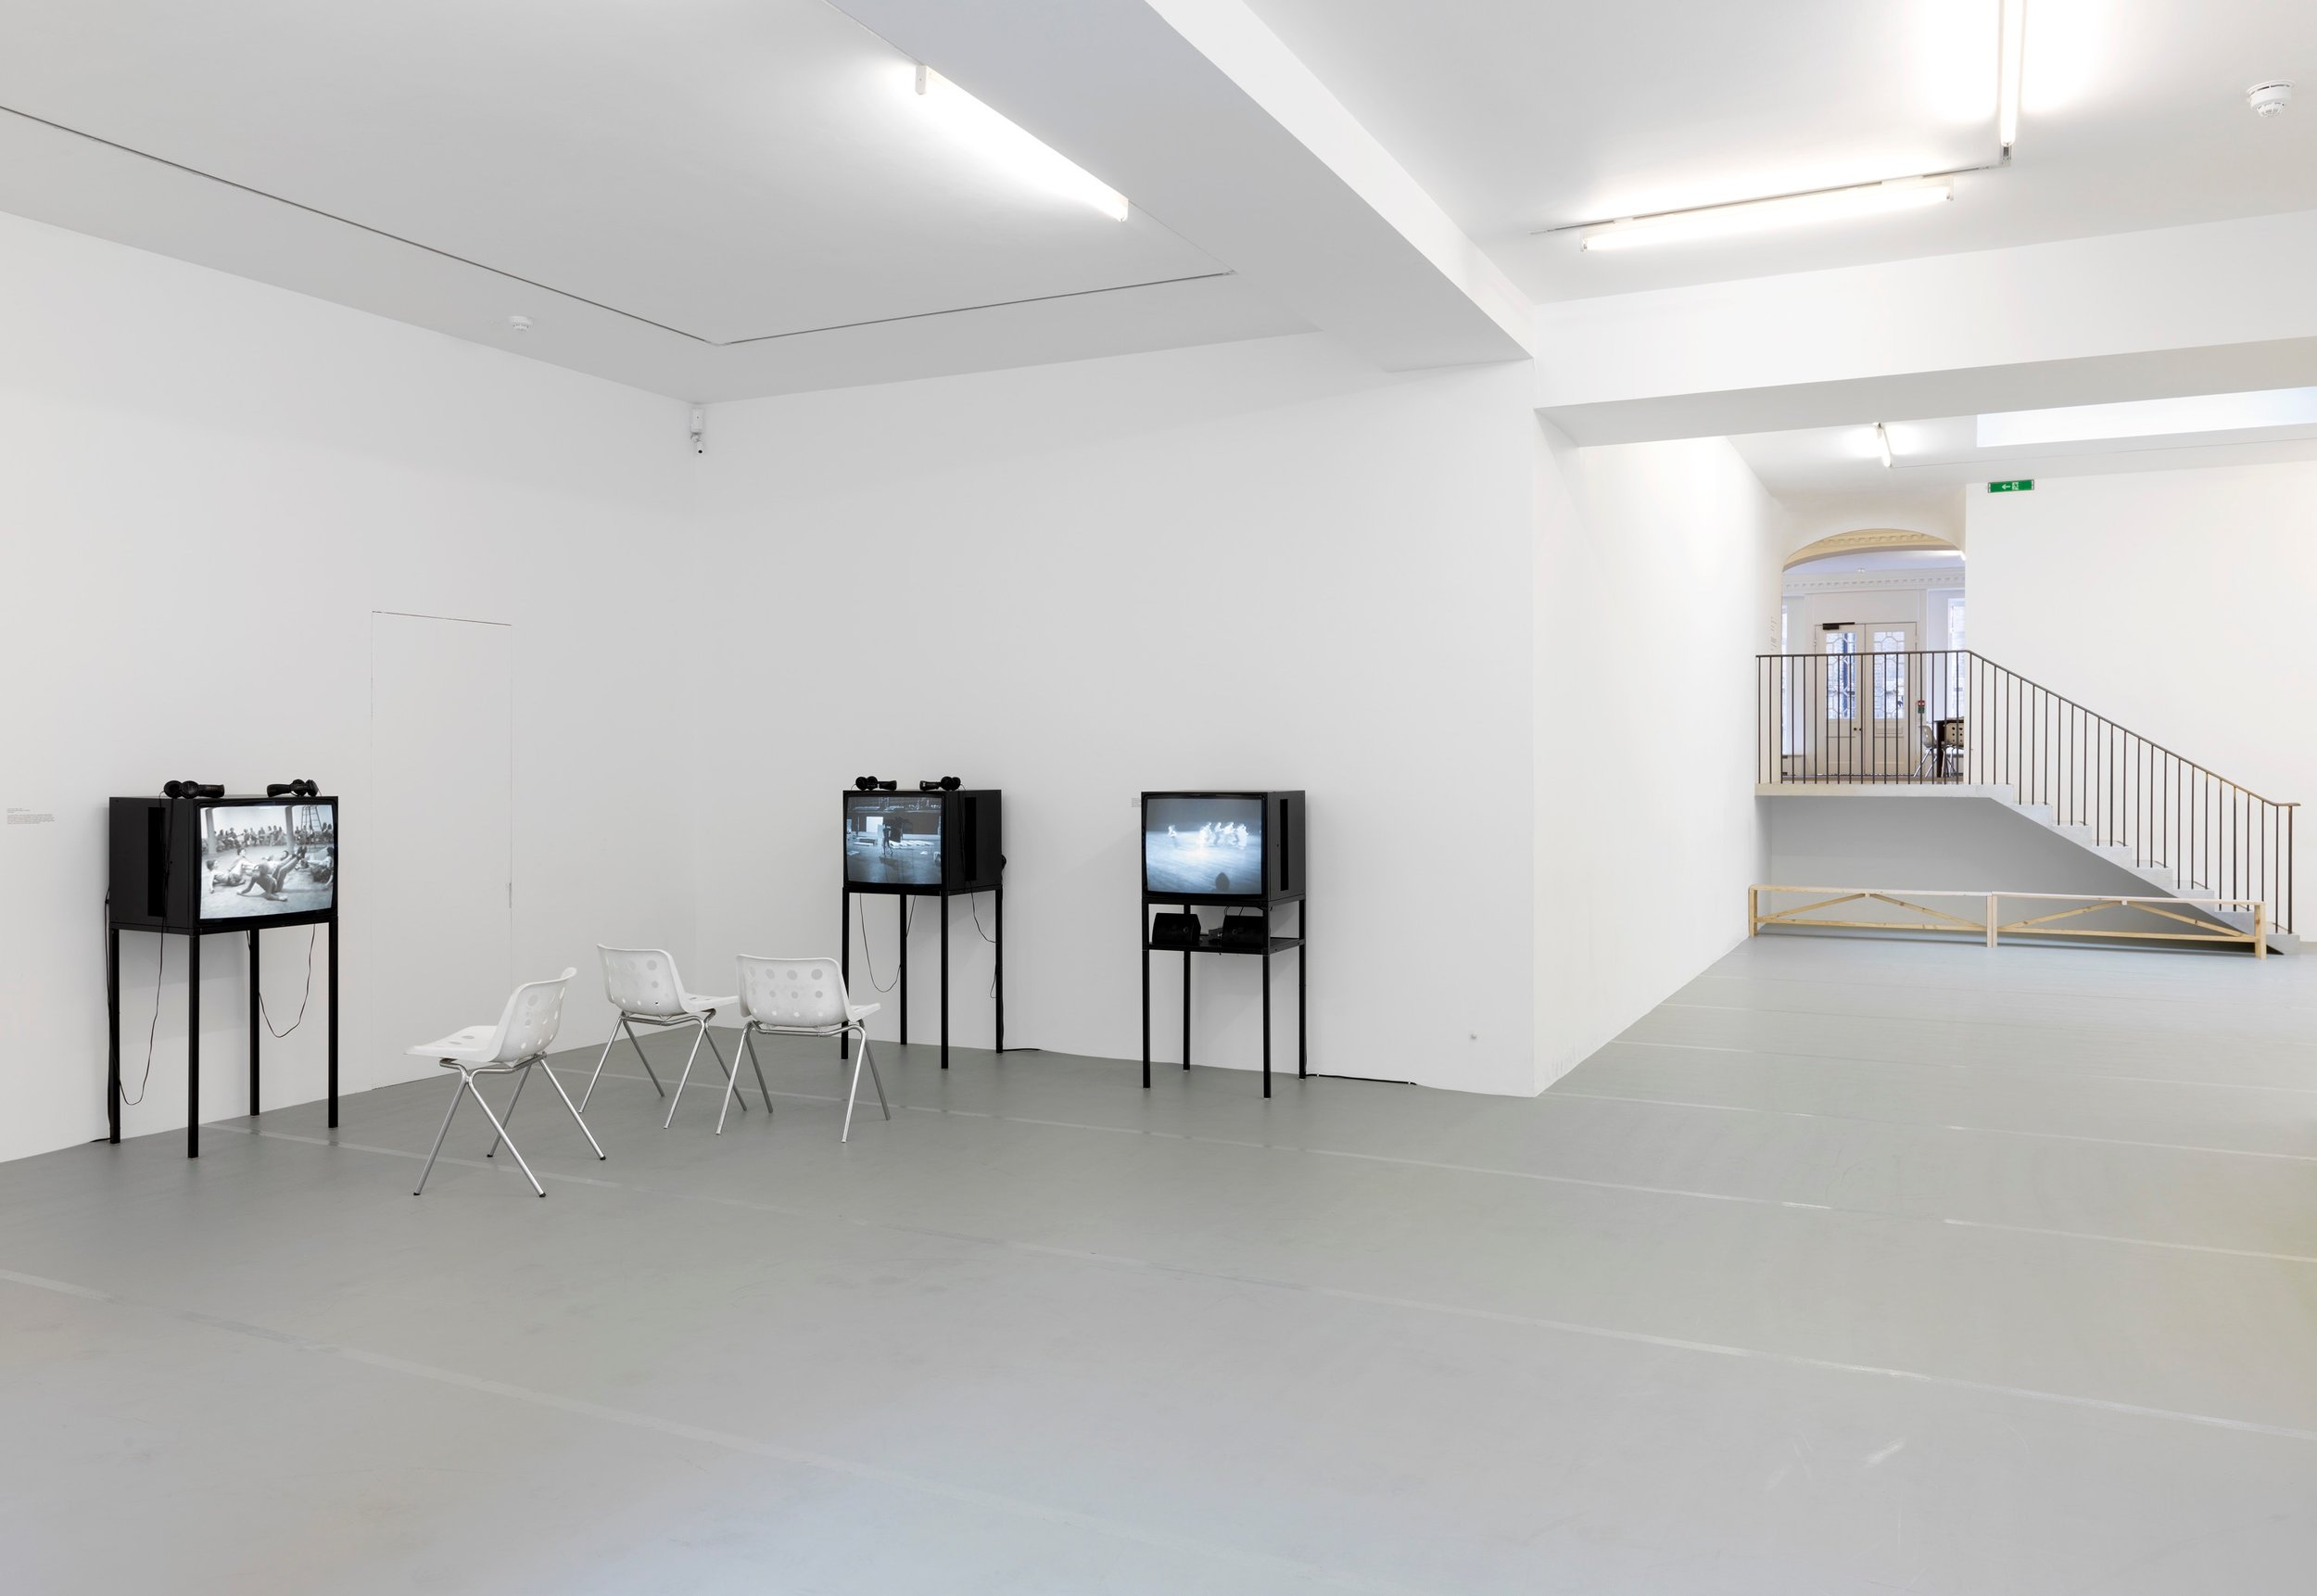 Yvonne Rainer: Dance Works, Raven Row